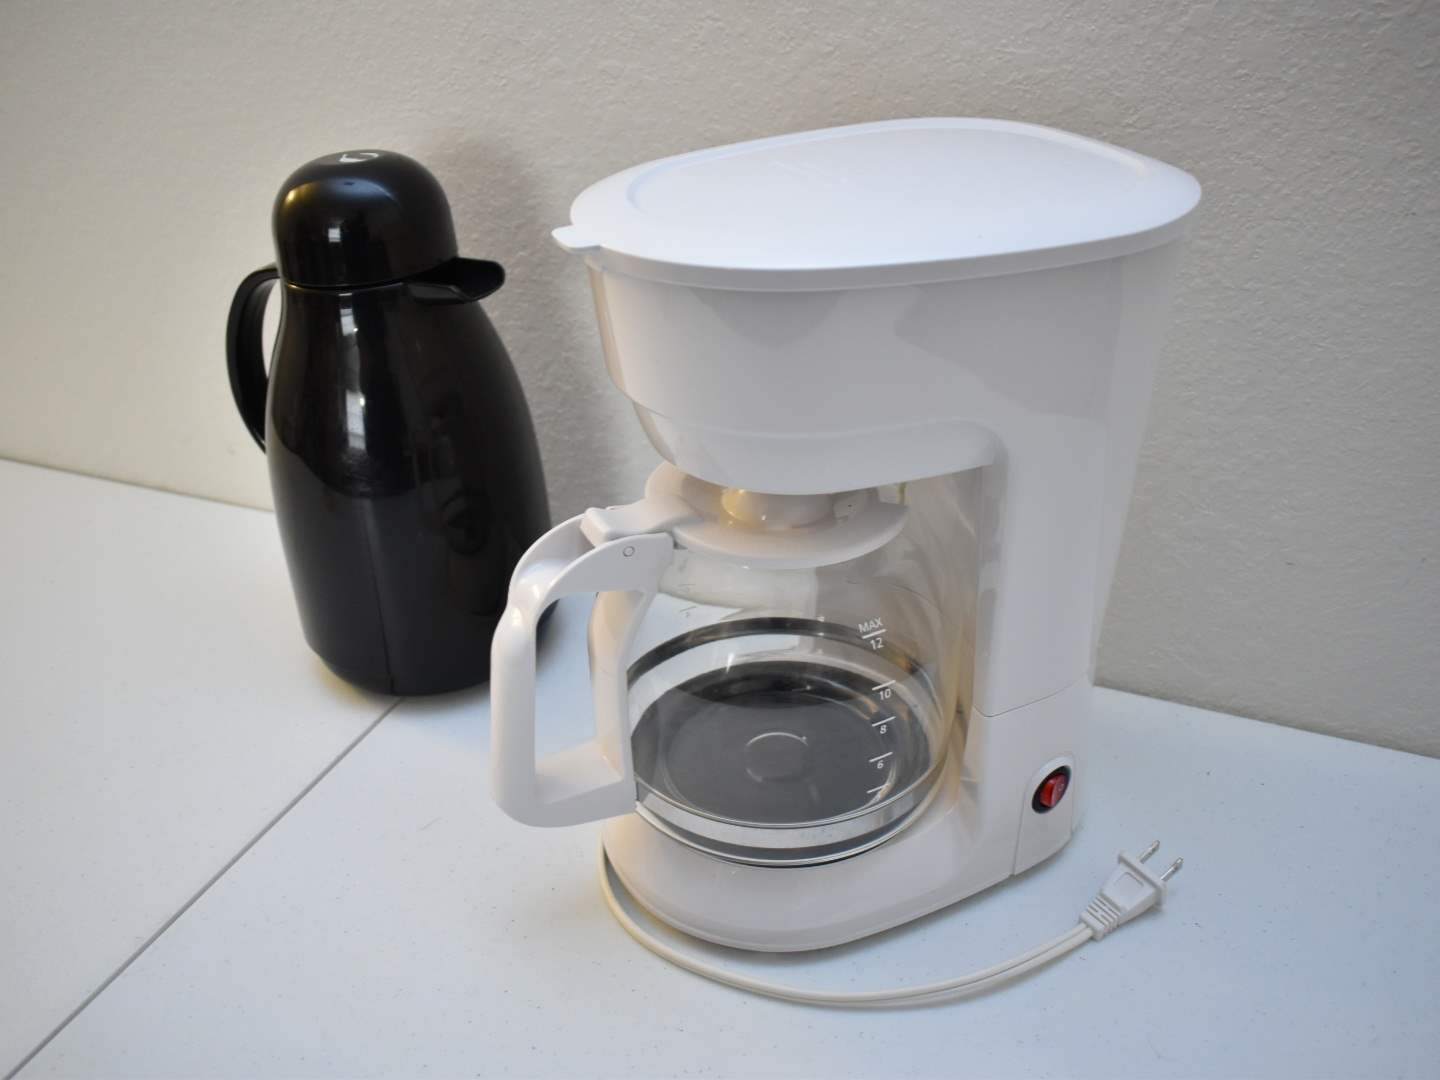 Coffee Maker and Coffee Pot